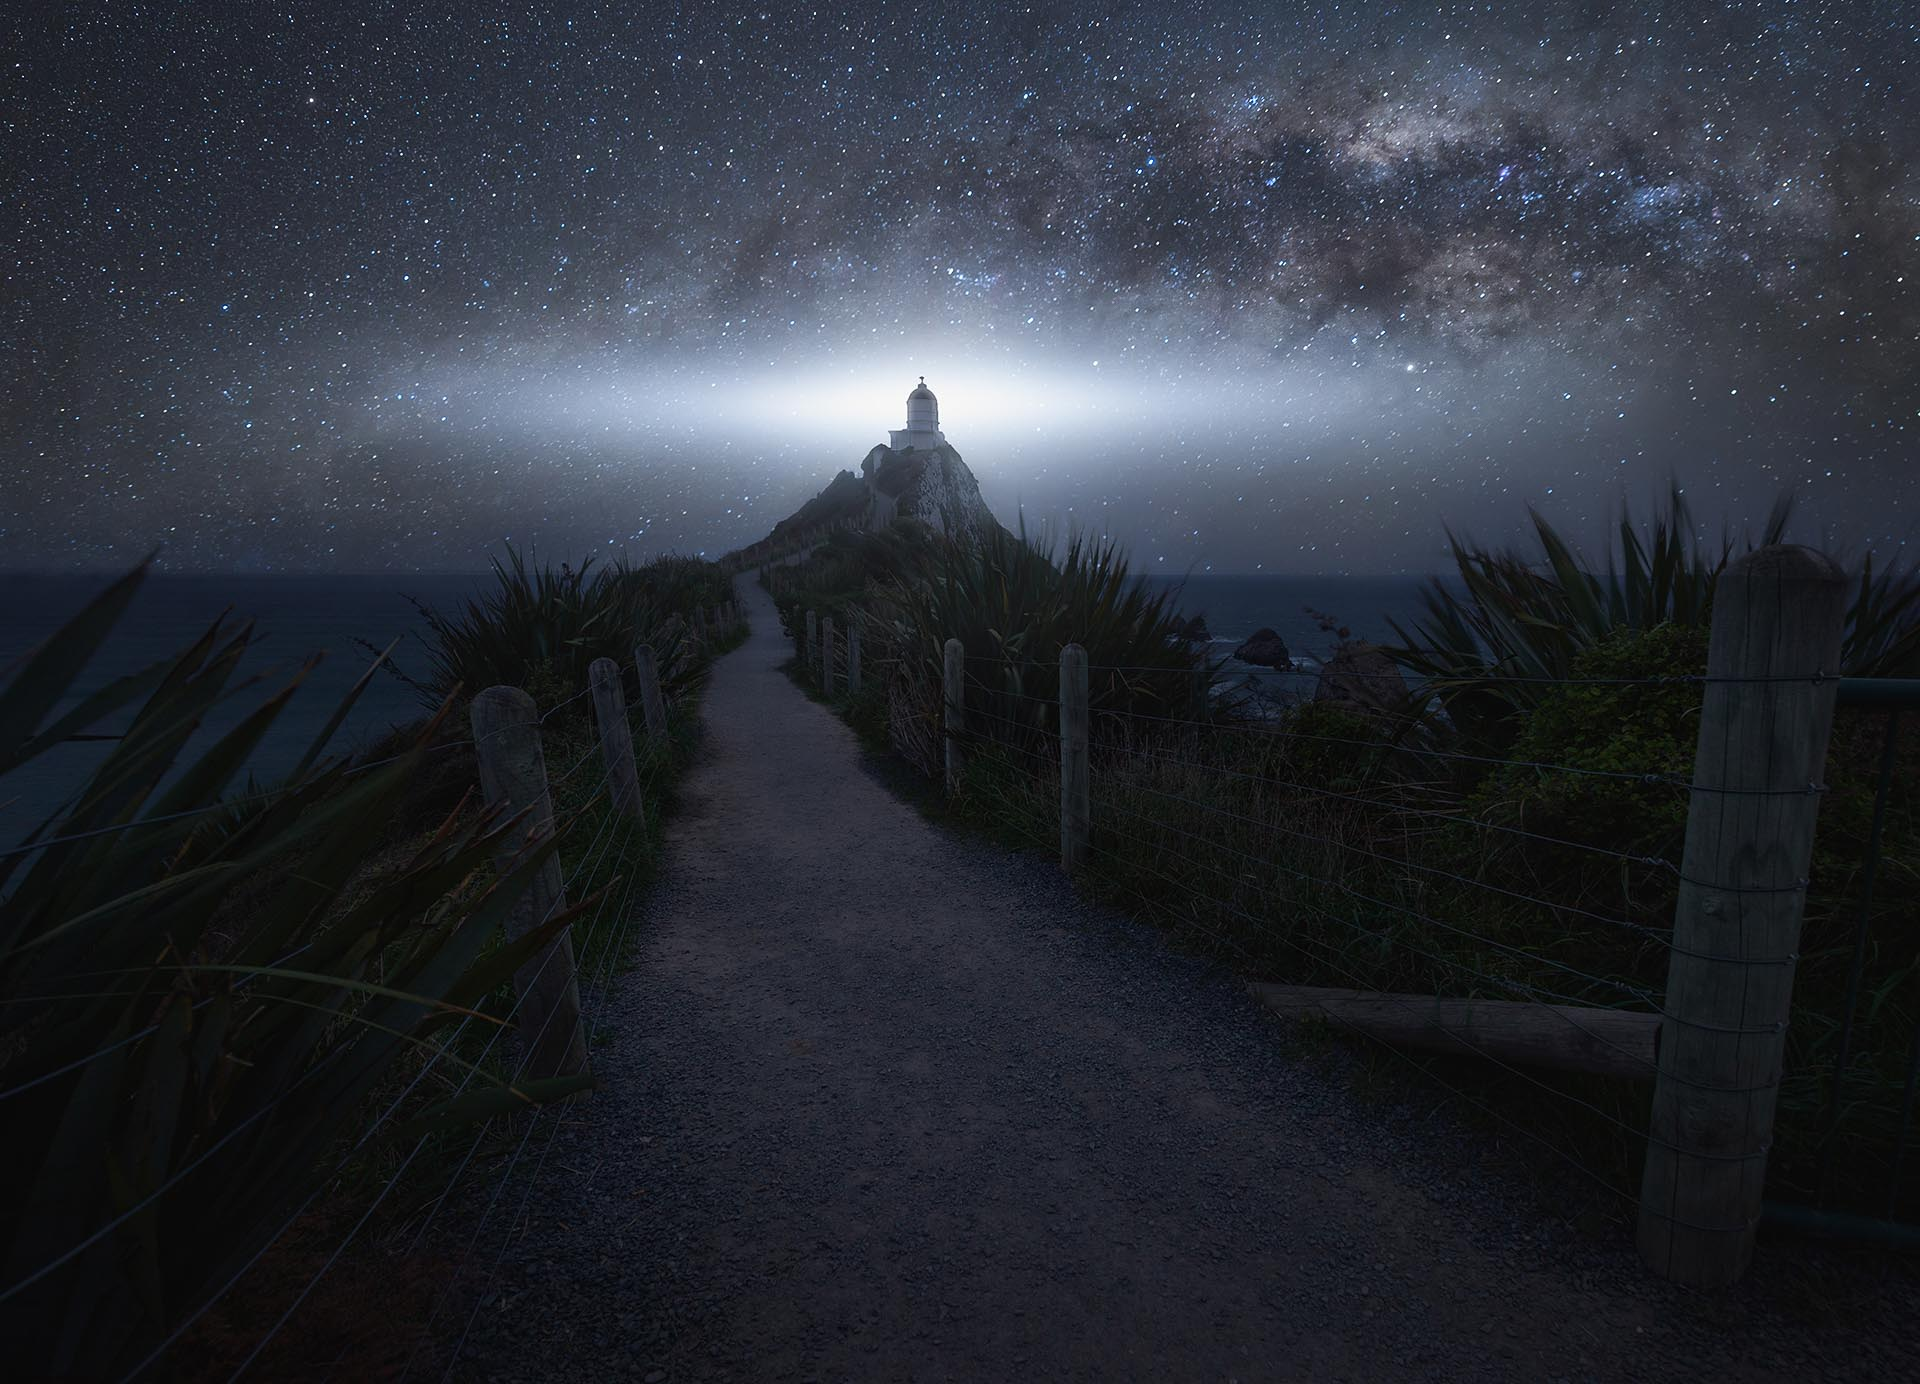 Nugget Point lighthouse Miljy Way Starry night New Zealand